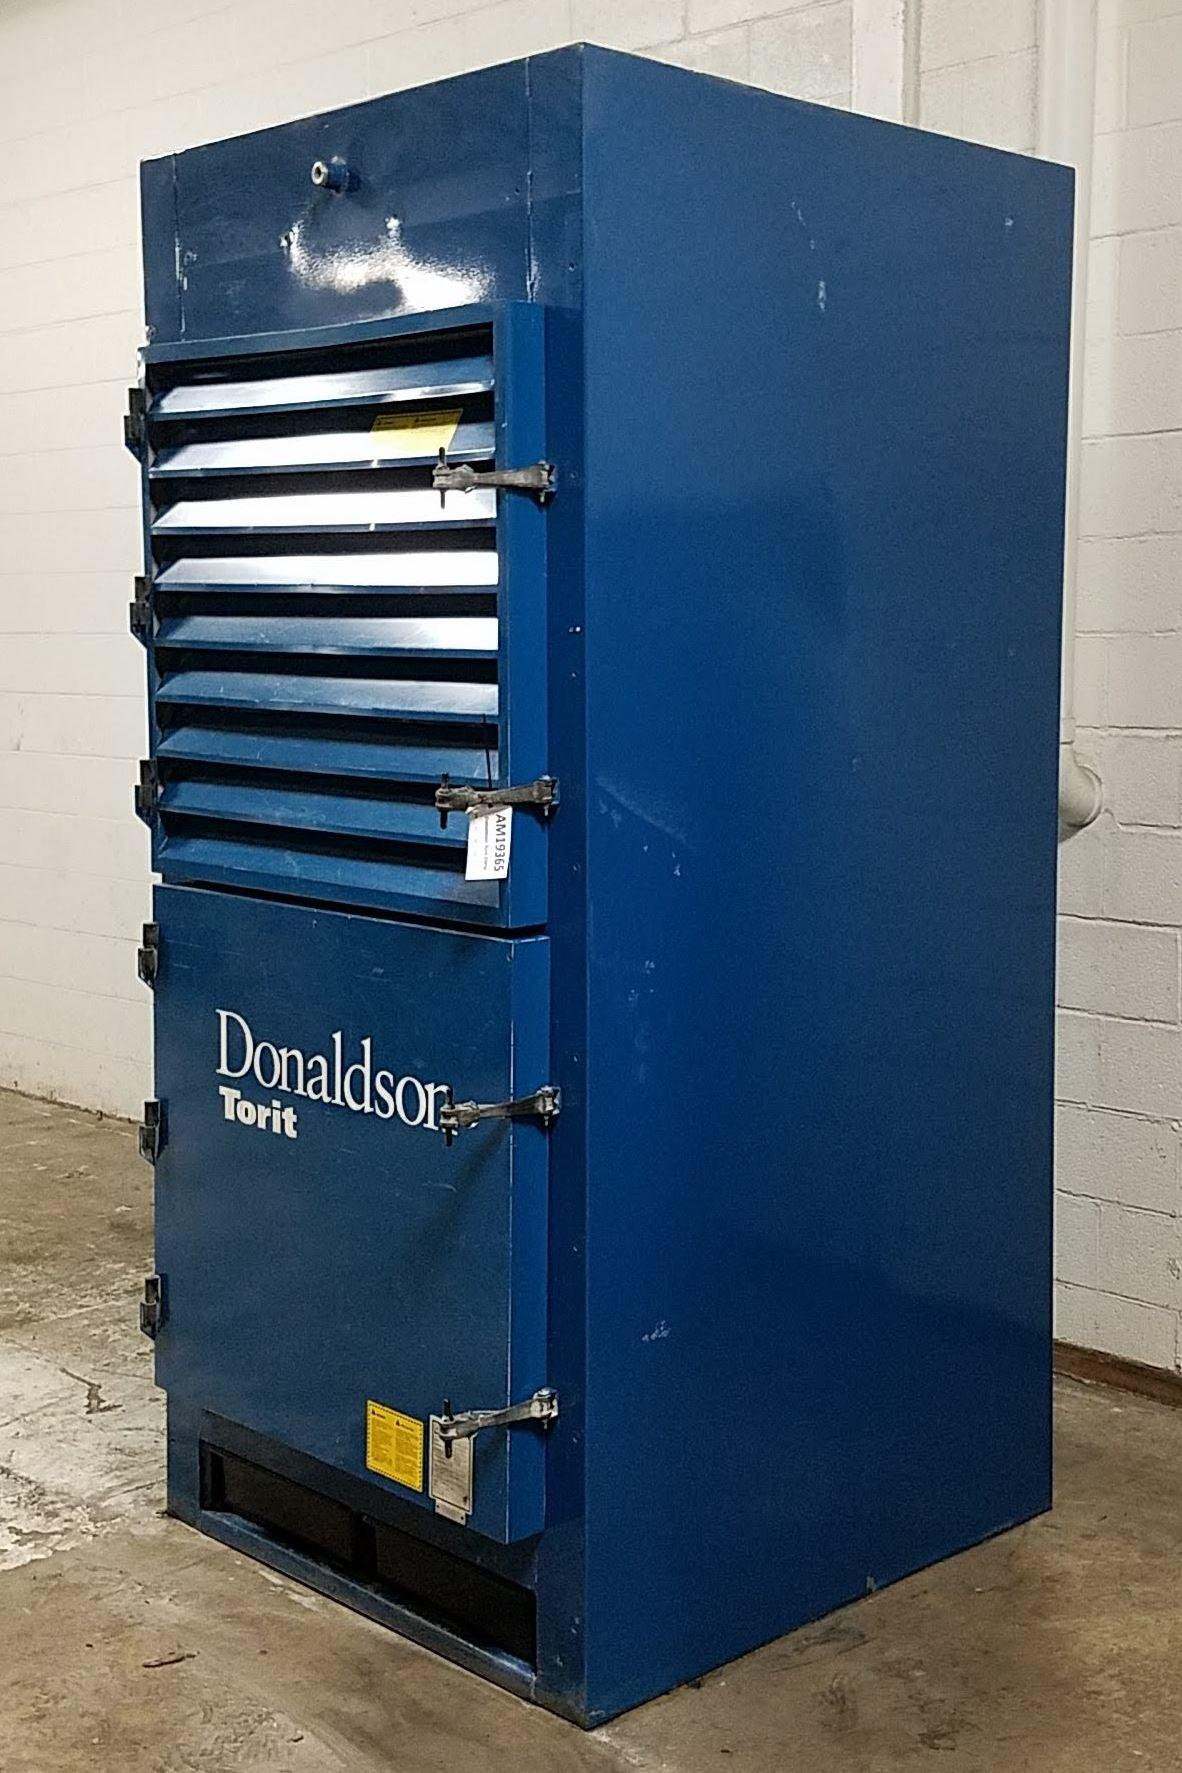 5,500 cfm Donaldson Torit #DWS-6 Booth & Backdraft Dust Collector